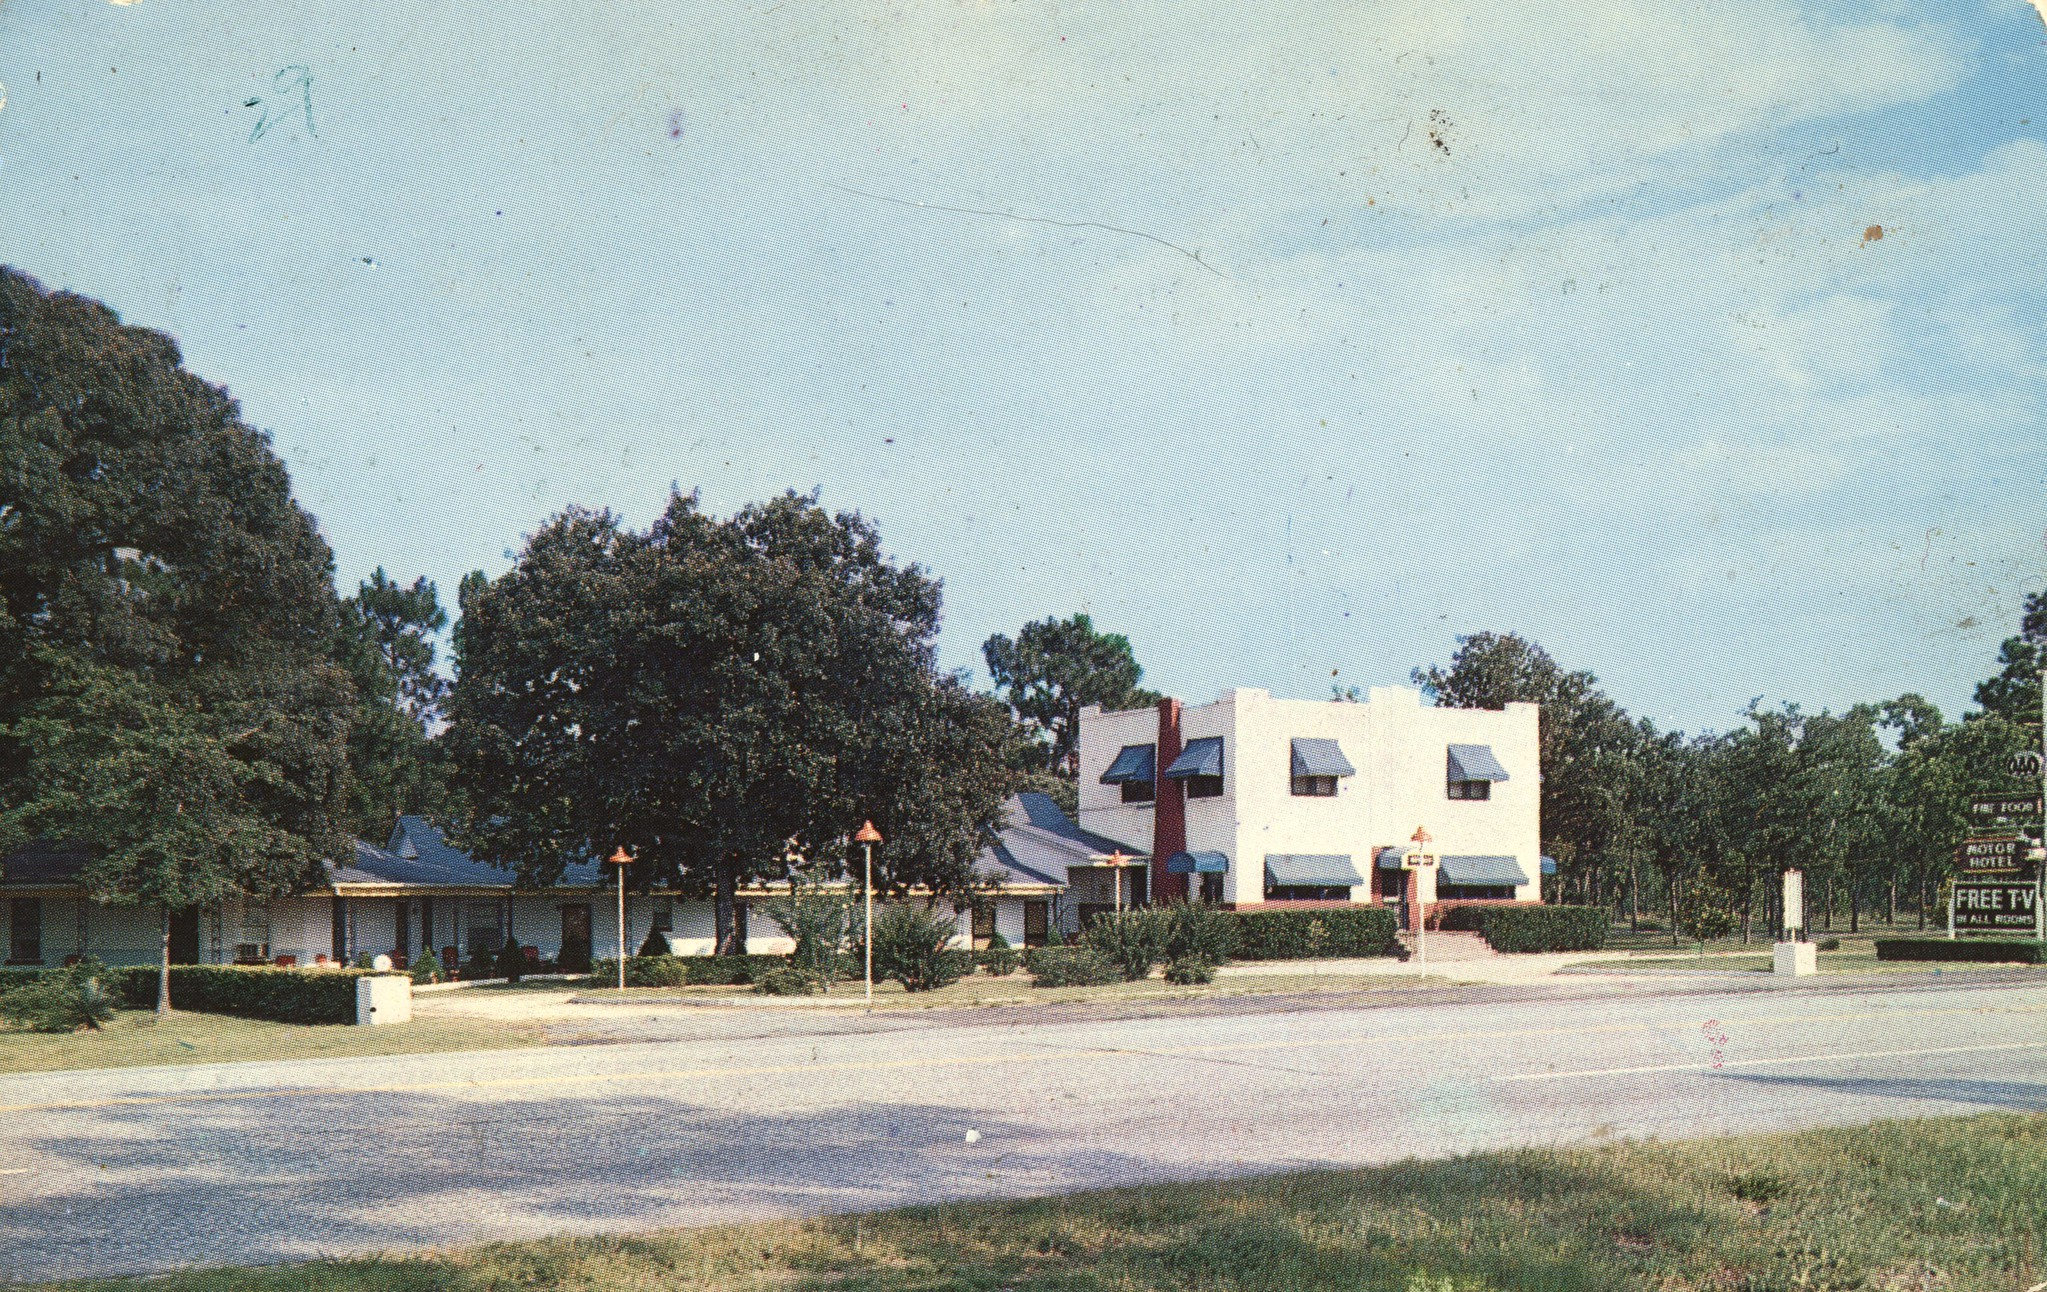 Lee's Ranch and Motor Inn - Walterboro, South Carolina